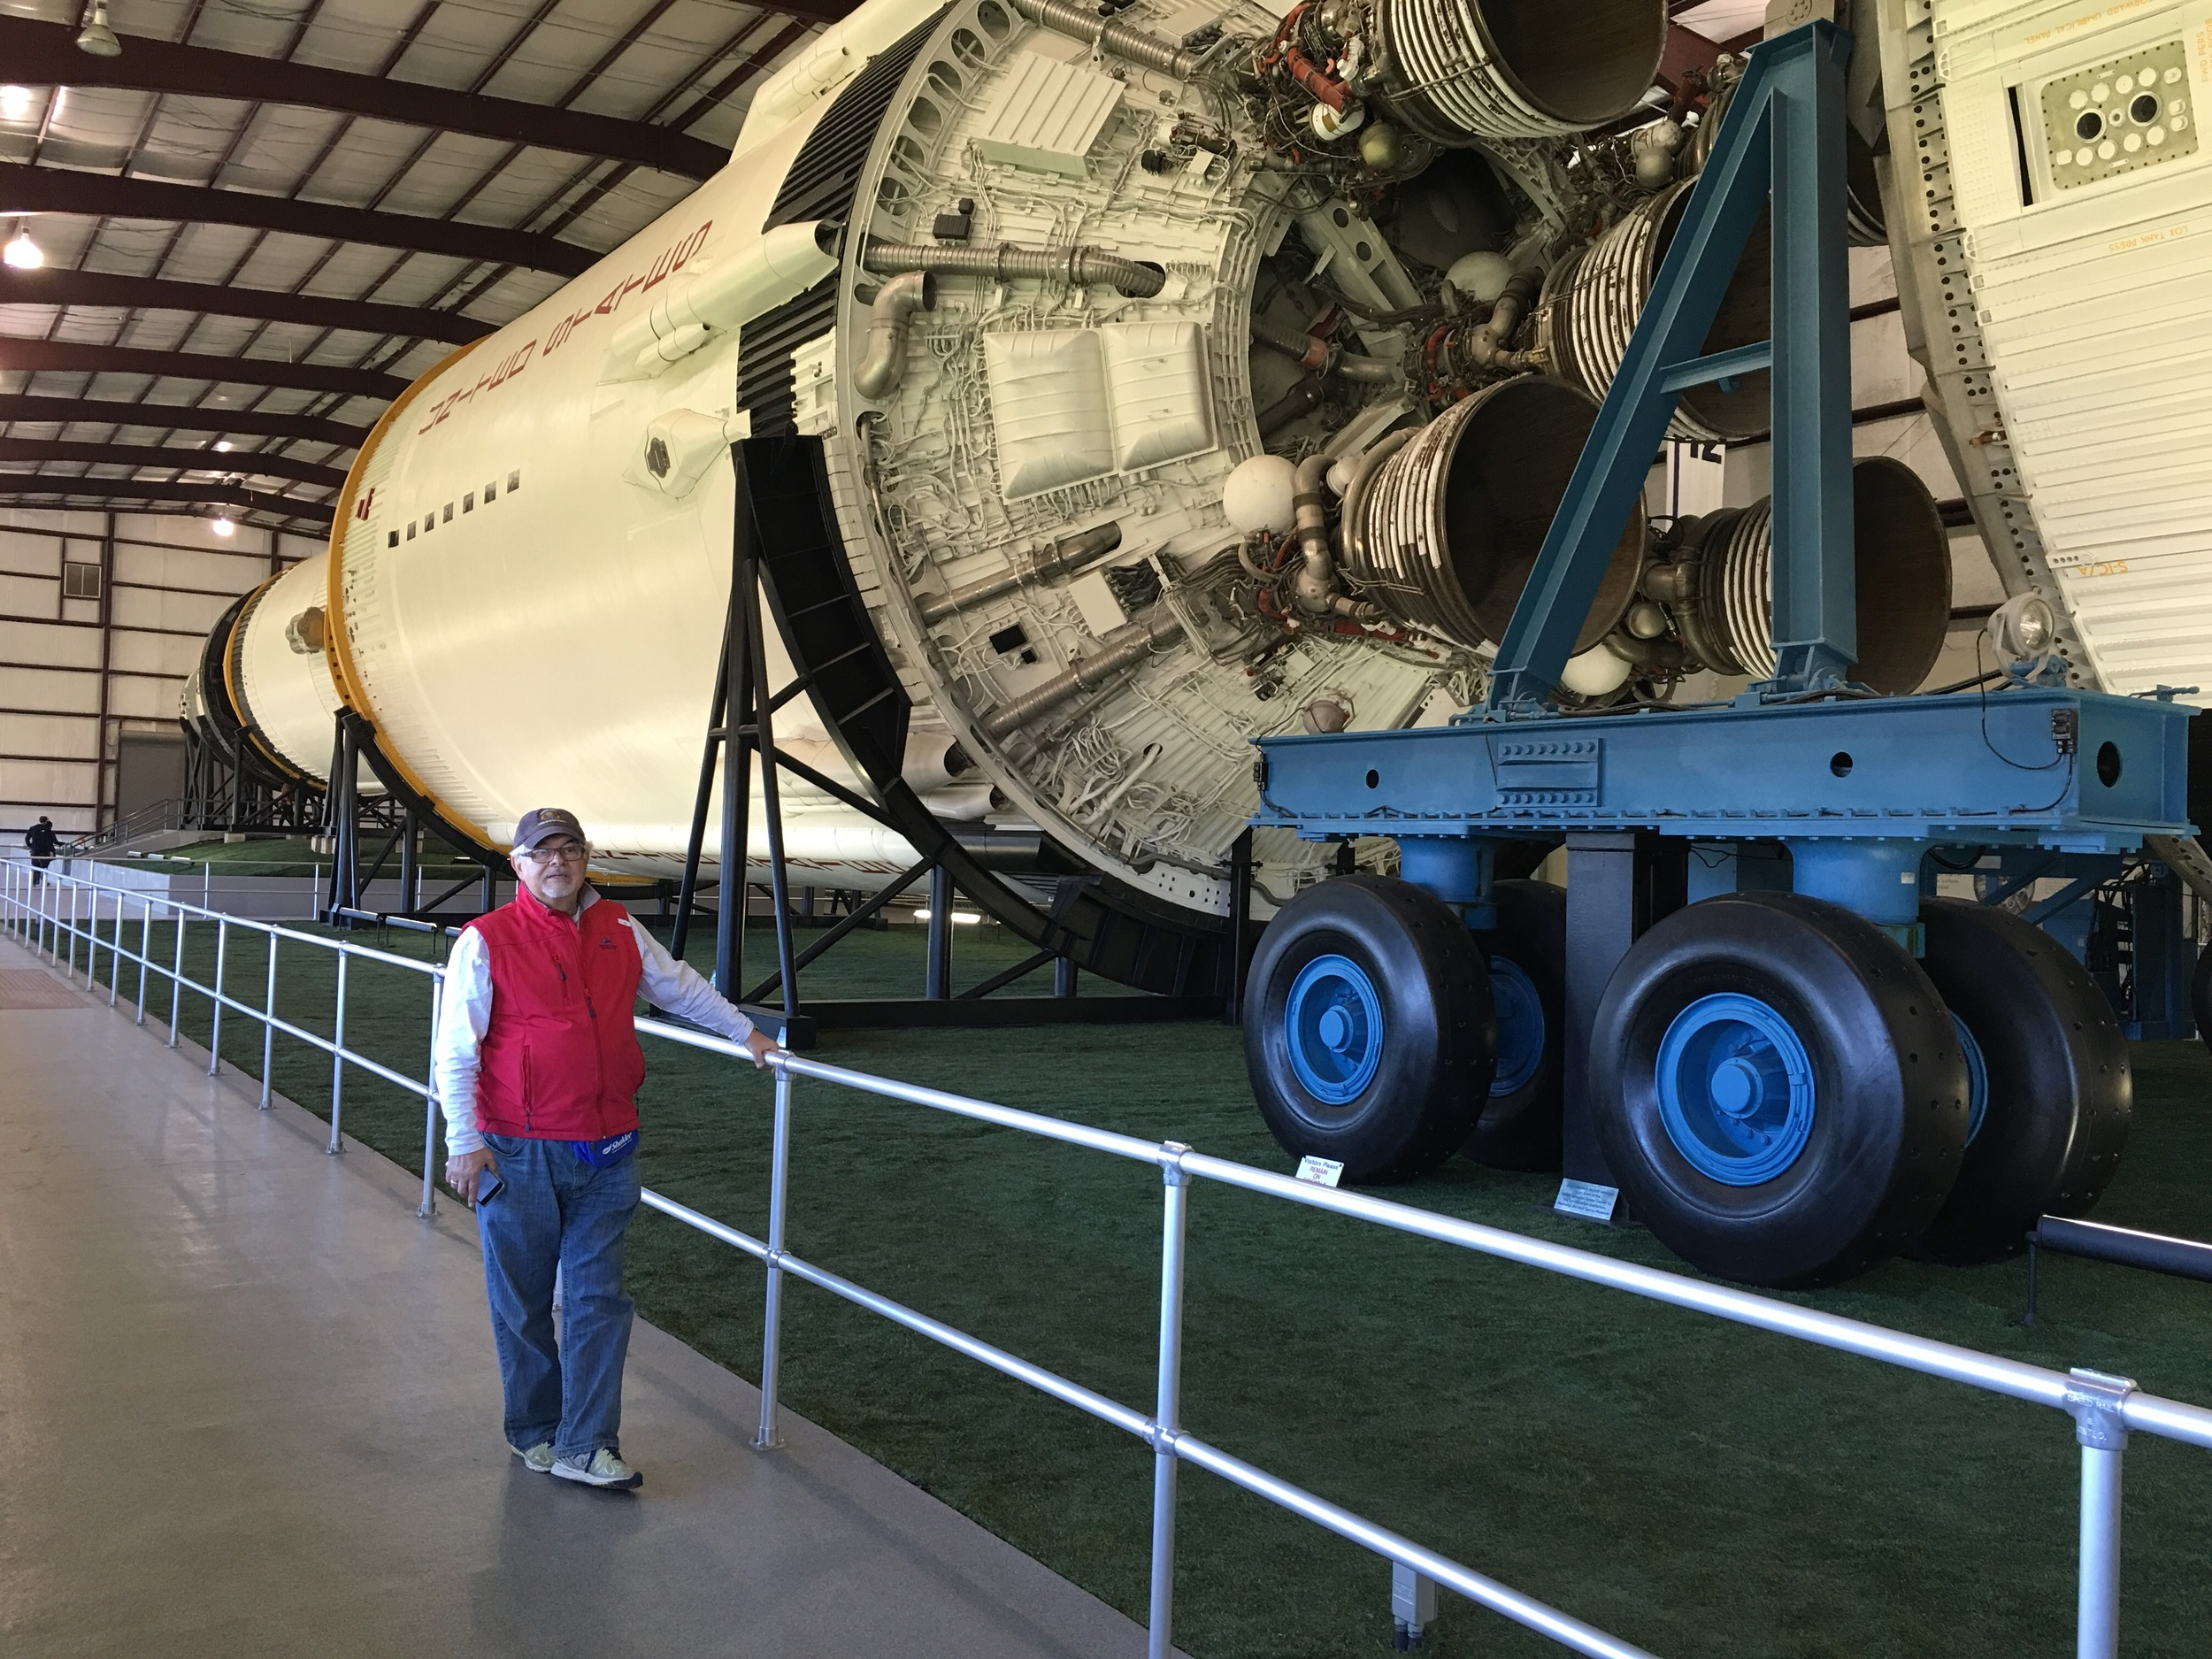 The Saturn 5 rocket is one of only 3 surviving vehicles built to launch American astronauts to the moon in the 60's and 70's. The size of the craft is unbelievable!